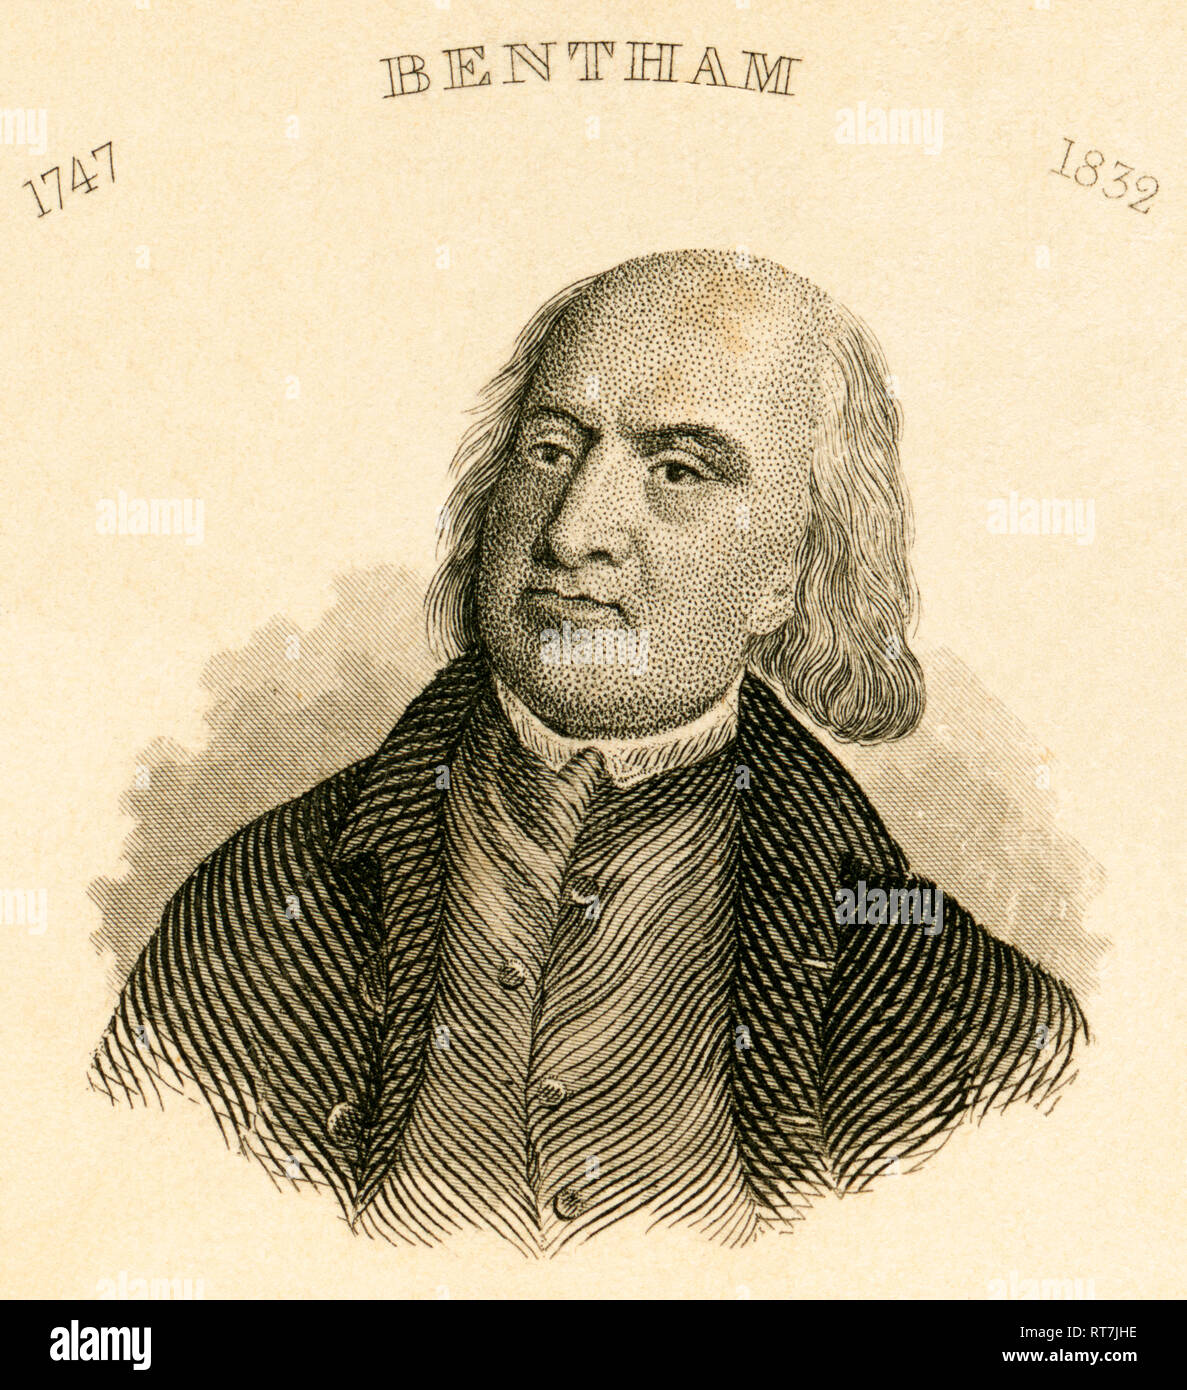 Jeremy Bentham, English philosopher and jurist, steel engraving by Carl Mayer / Nürnberg, published by C. A. Hartleben, about 1850., Artist's Copyright has not to be cleared - Stock Image